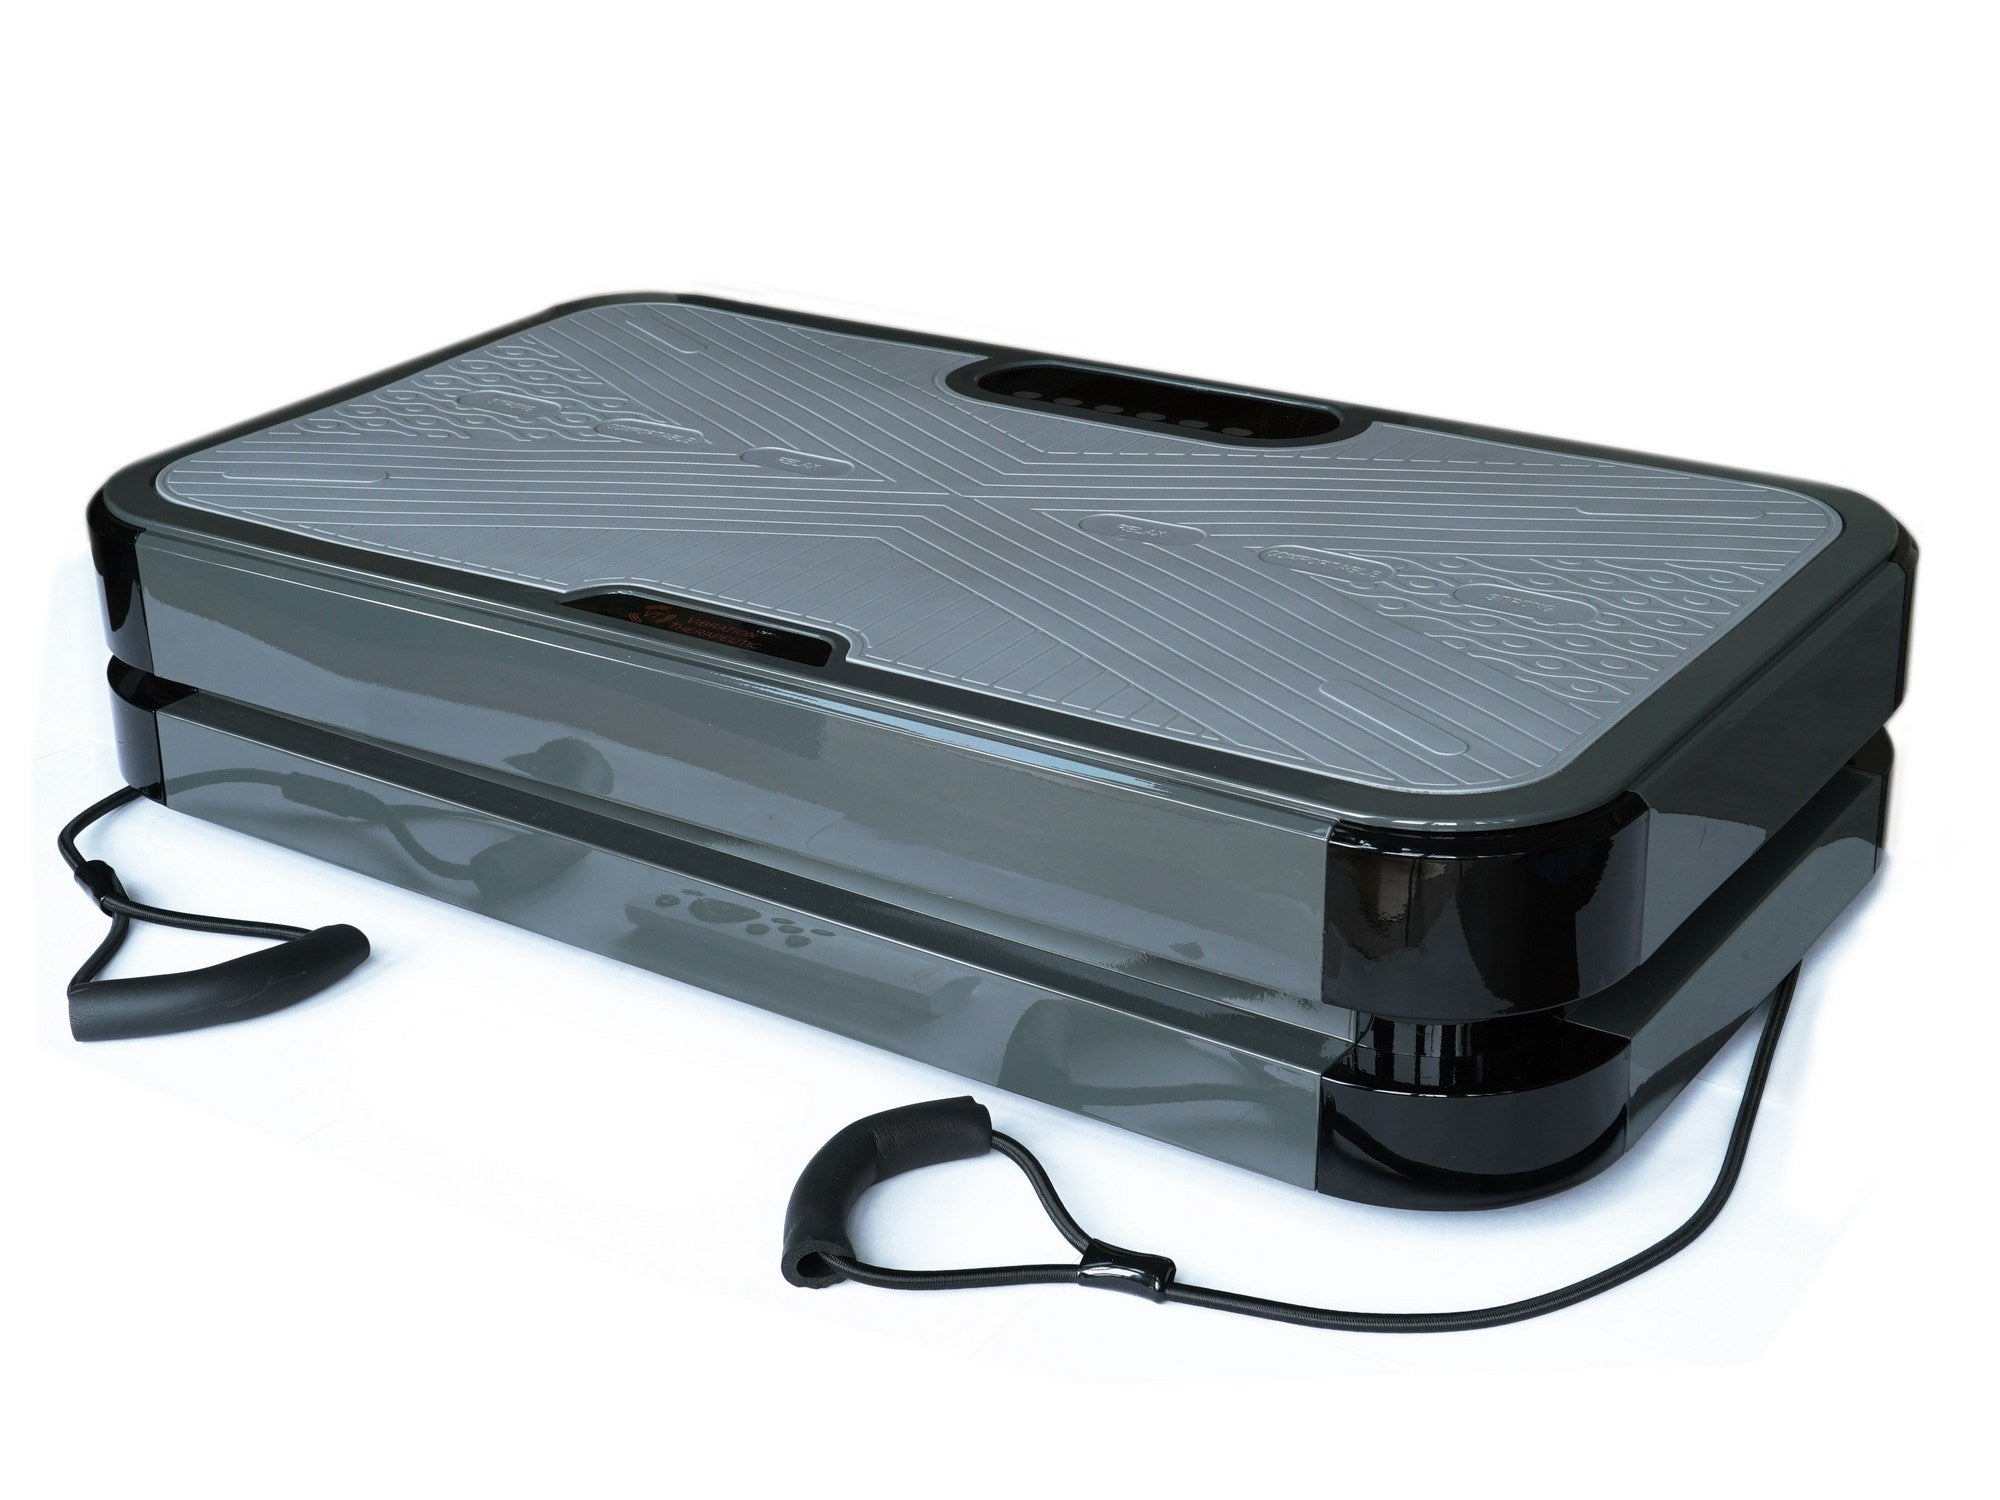 VT020-3 Vibration Plate User Reviews